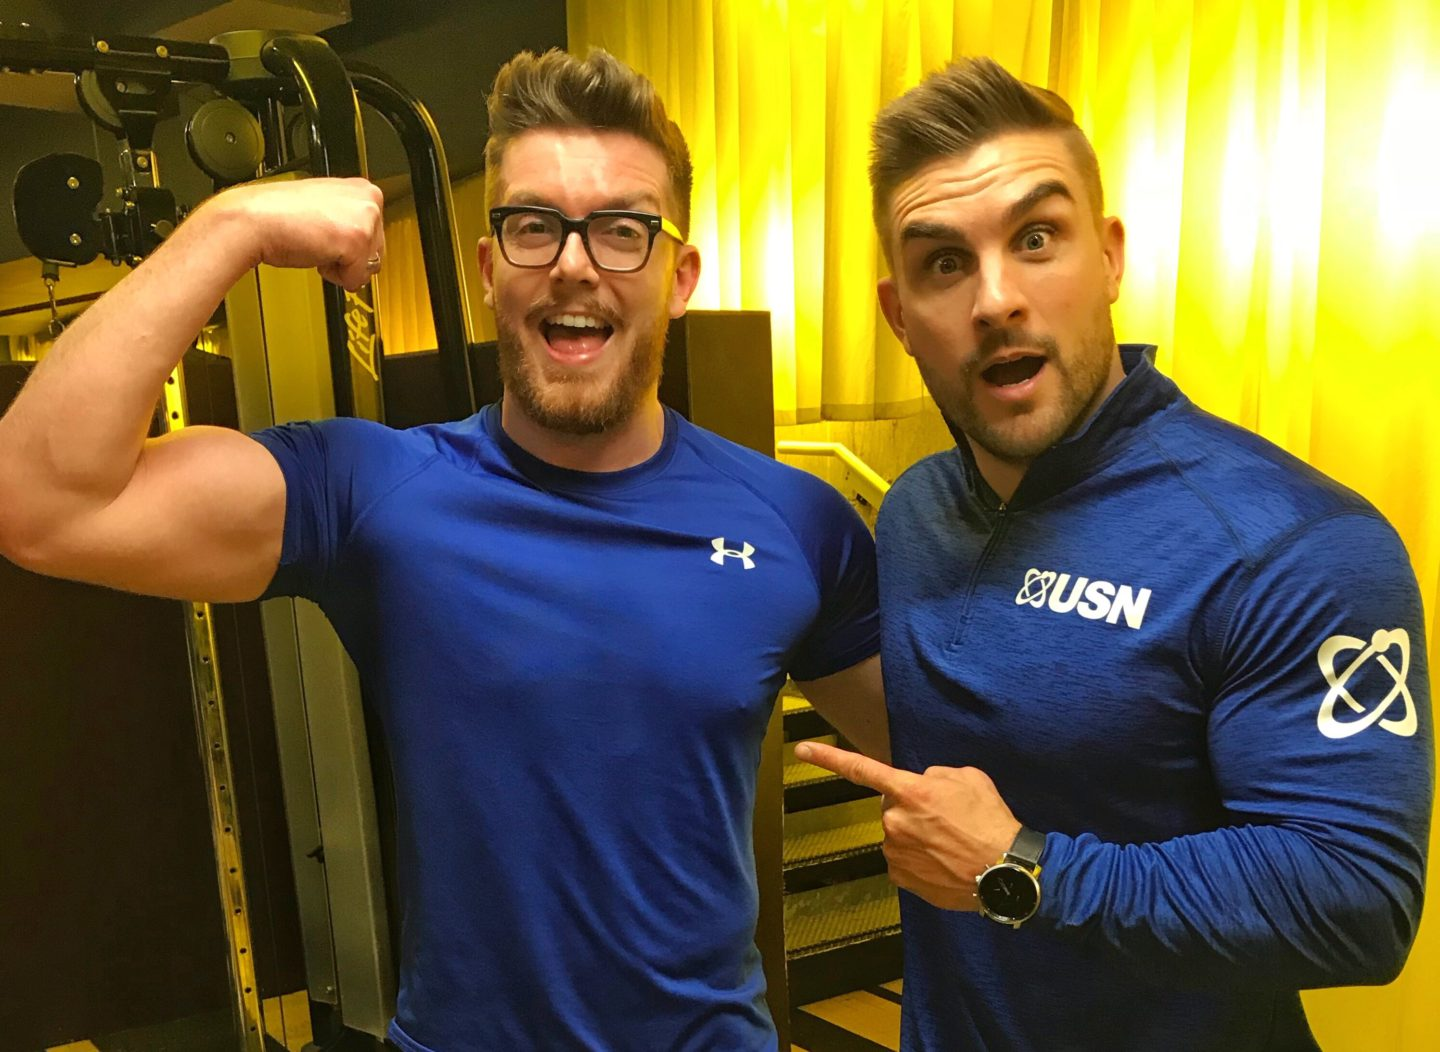 MR OLYMPIA STAR RYAN TERRY REVEALS HIS TOP TIPS FOR ALL GYM-GOERS